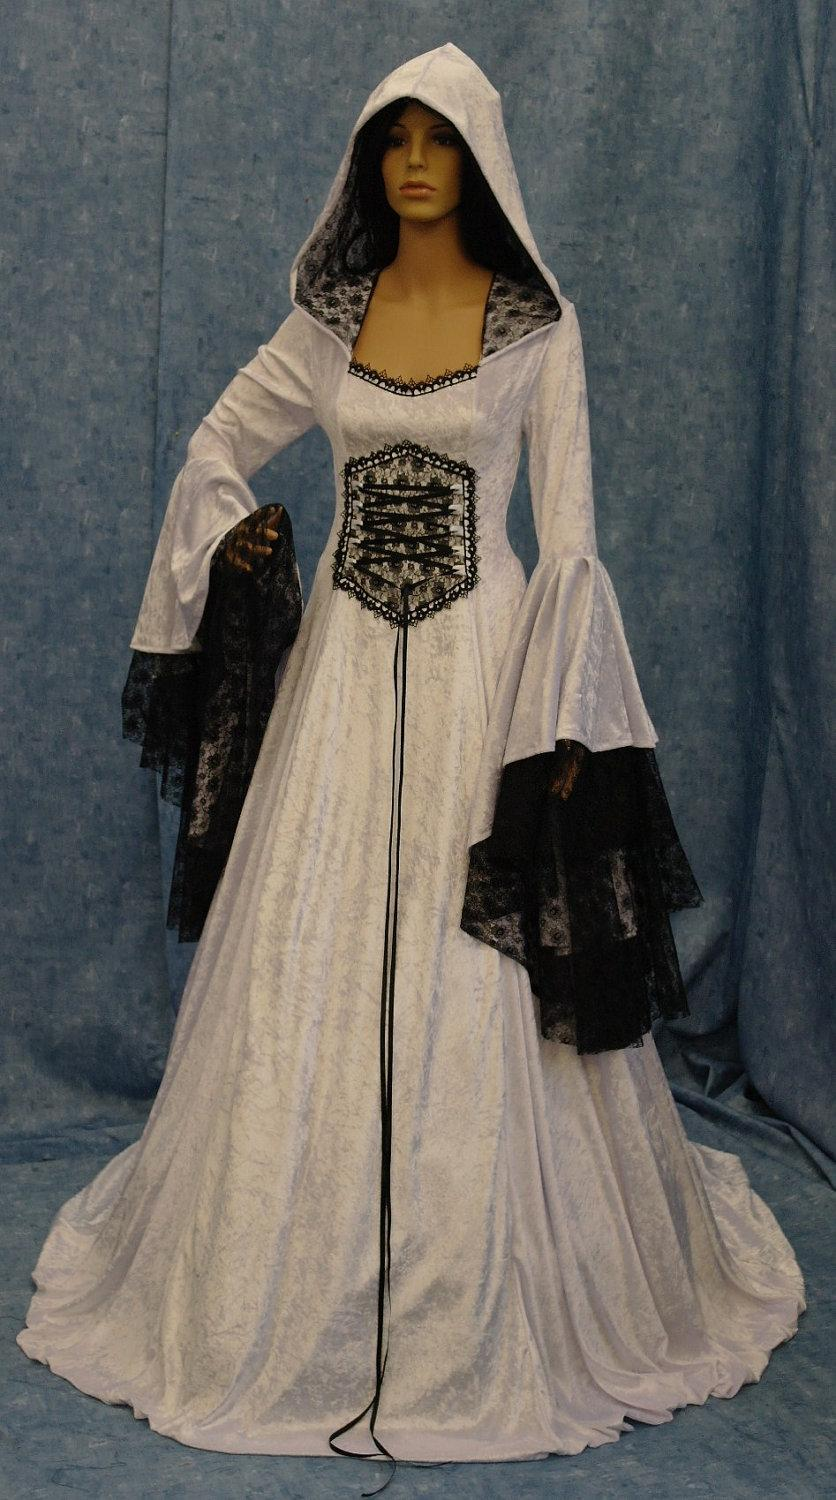 Hochzeit - Renaissance wedding dress, medieval dress, elven dress, fantasy wedding dress, black and white dress